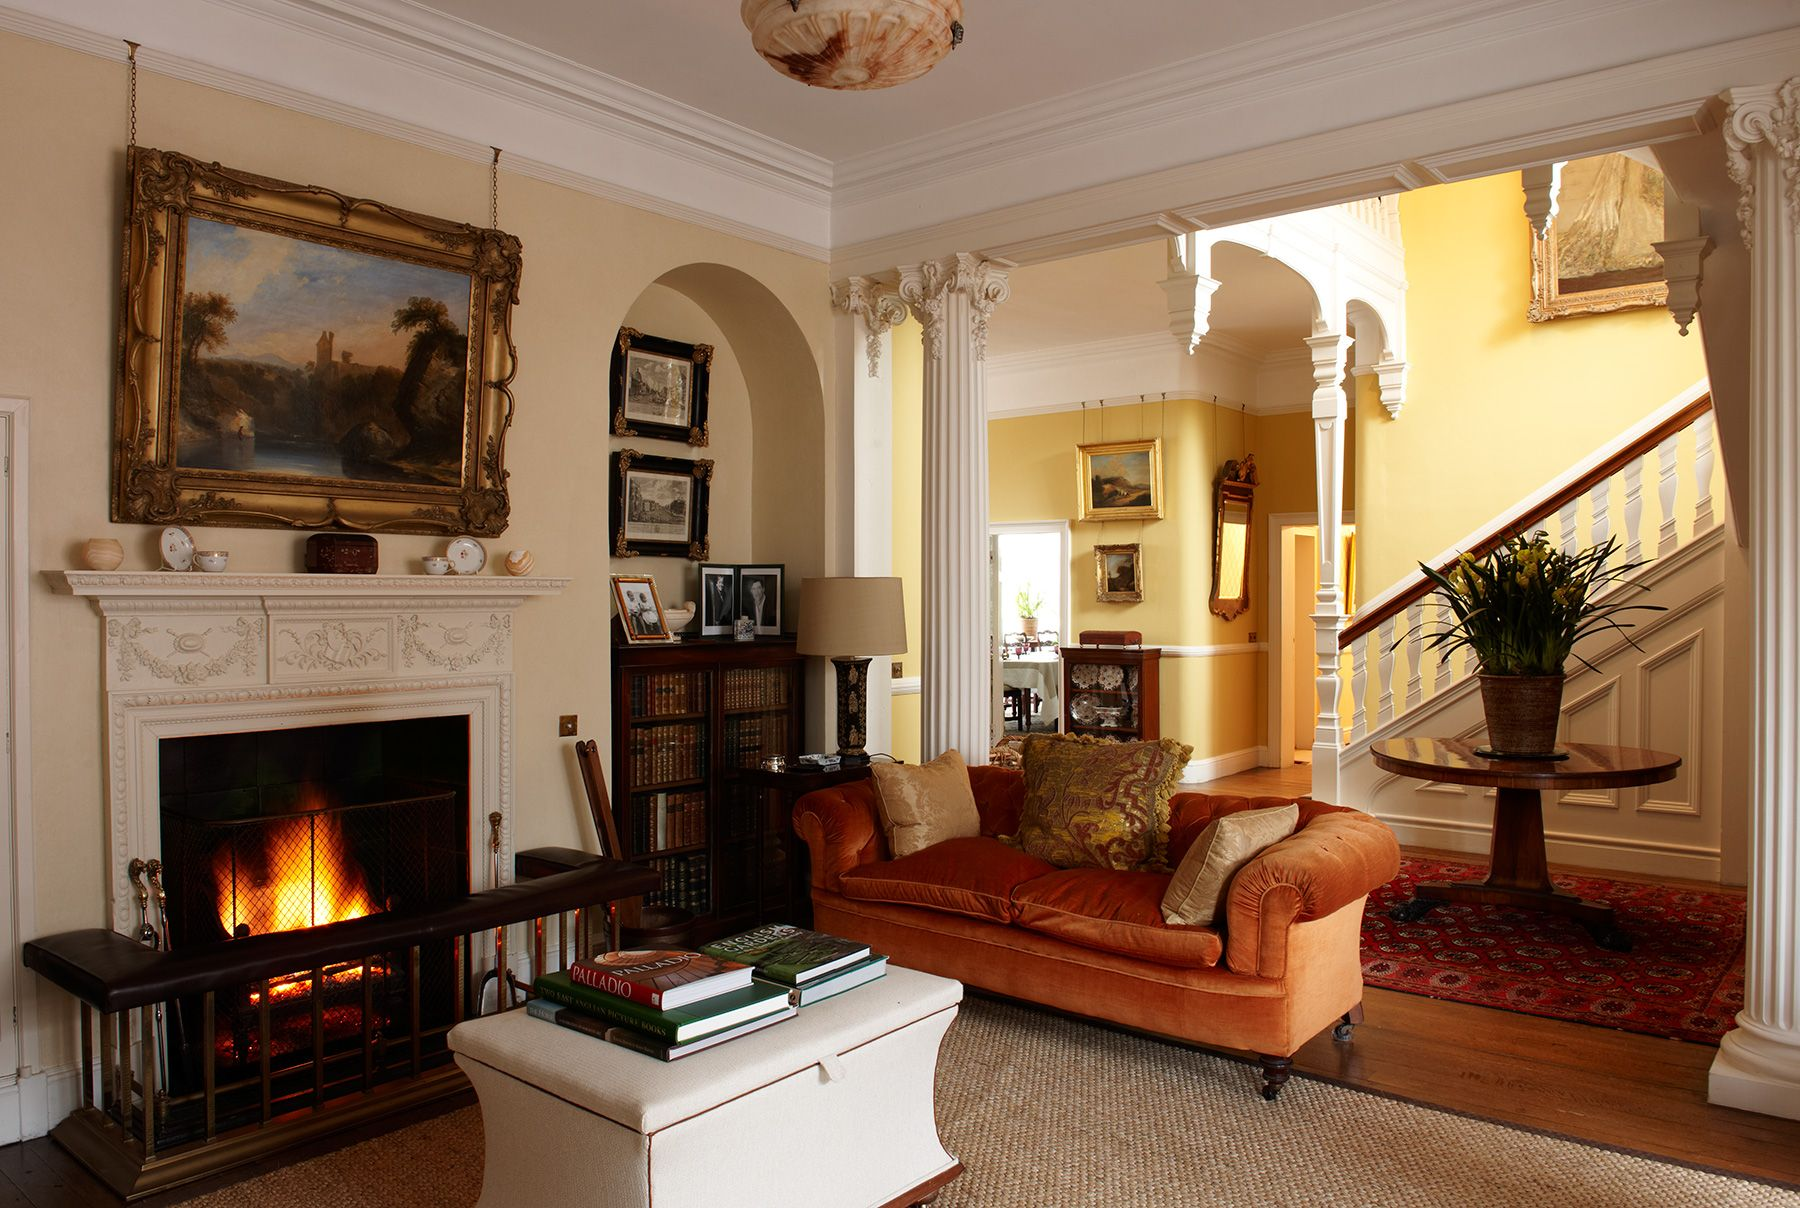 Home interior design drawing room interior design  country houses suffolktodhunter earle  mues